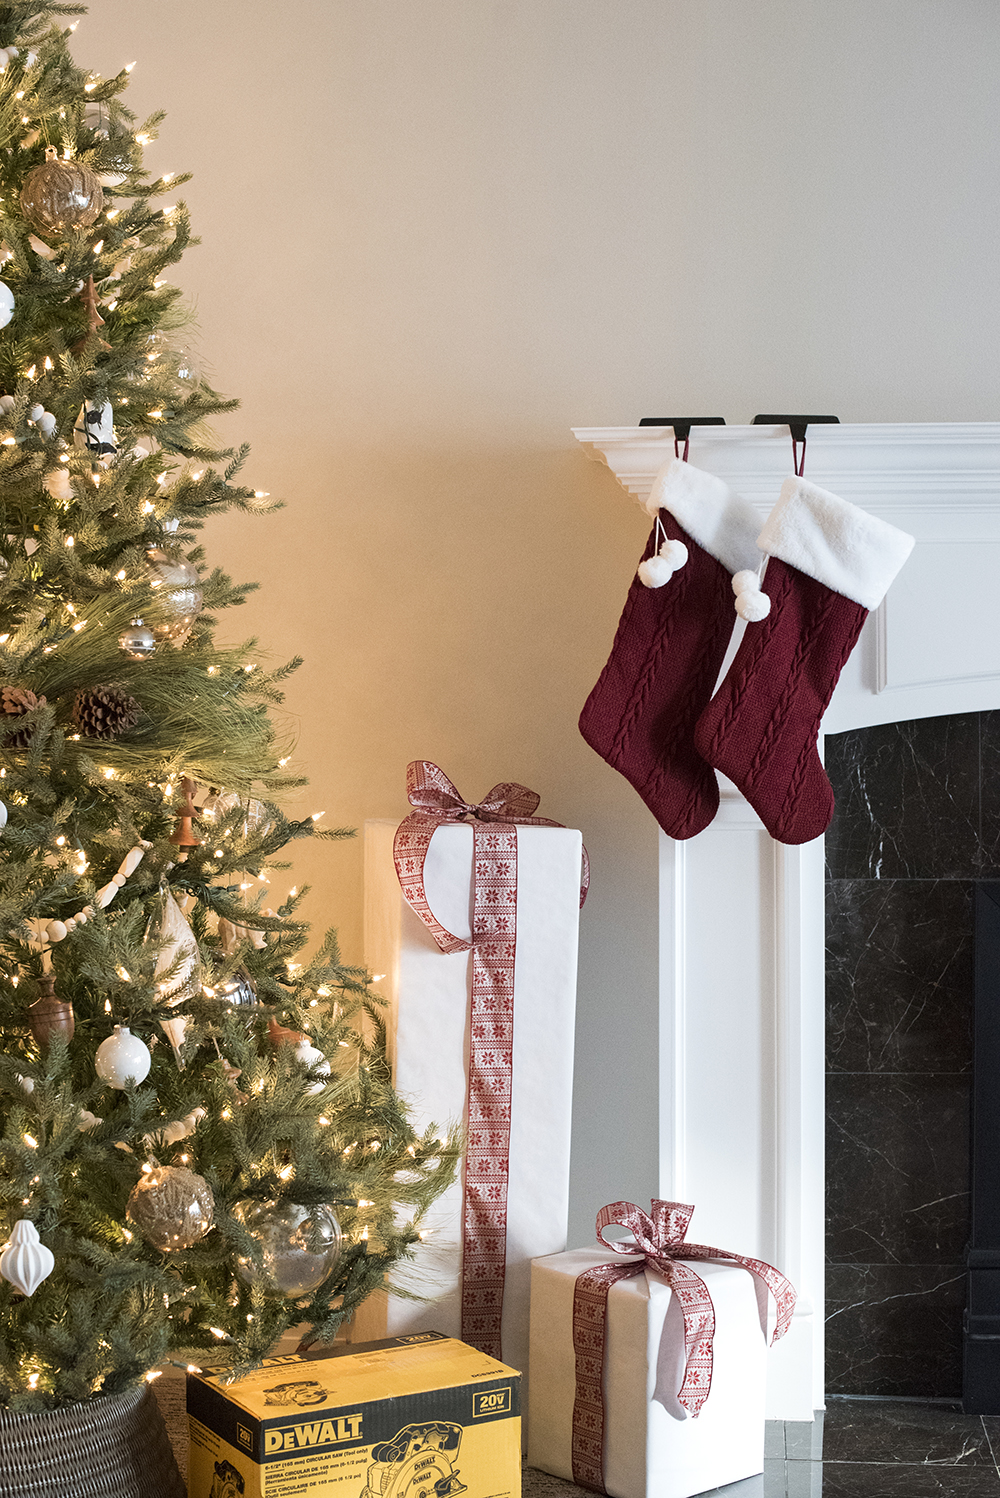 2019 Gift Guide for DIY & Renovating - roomfortuesday.com